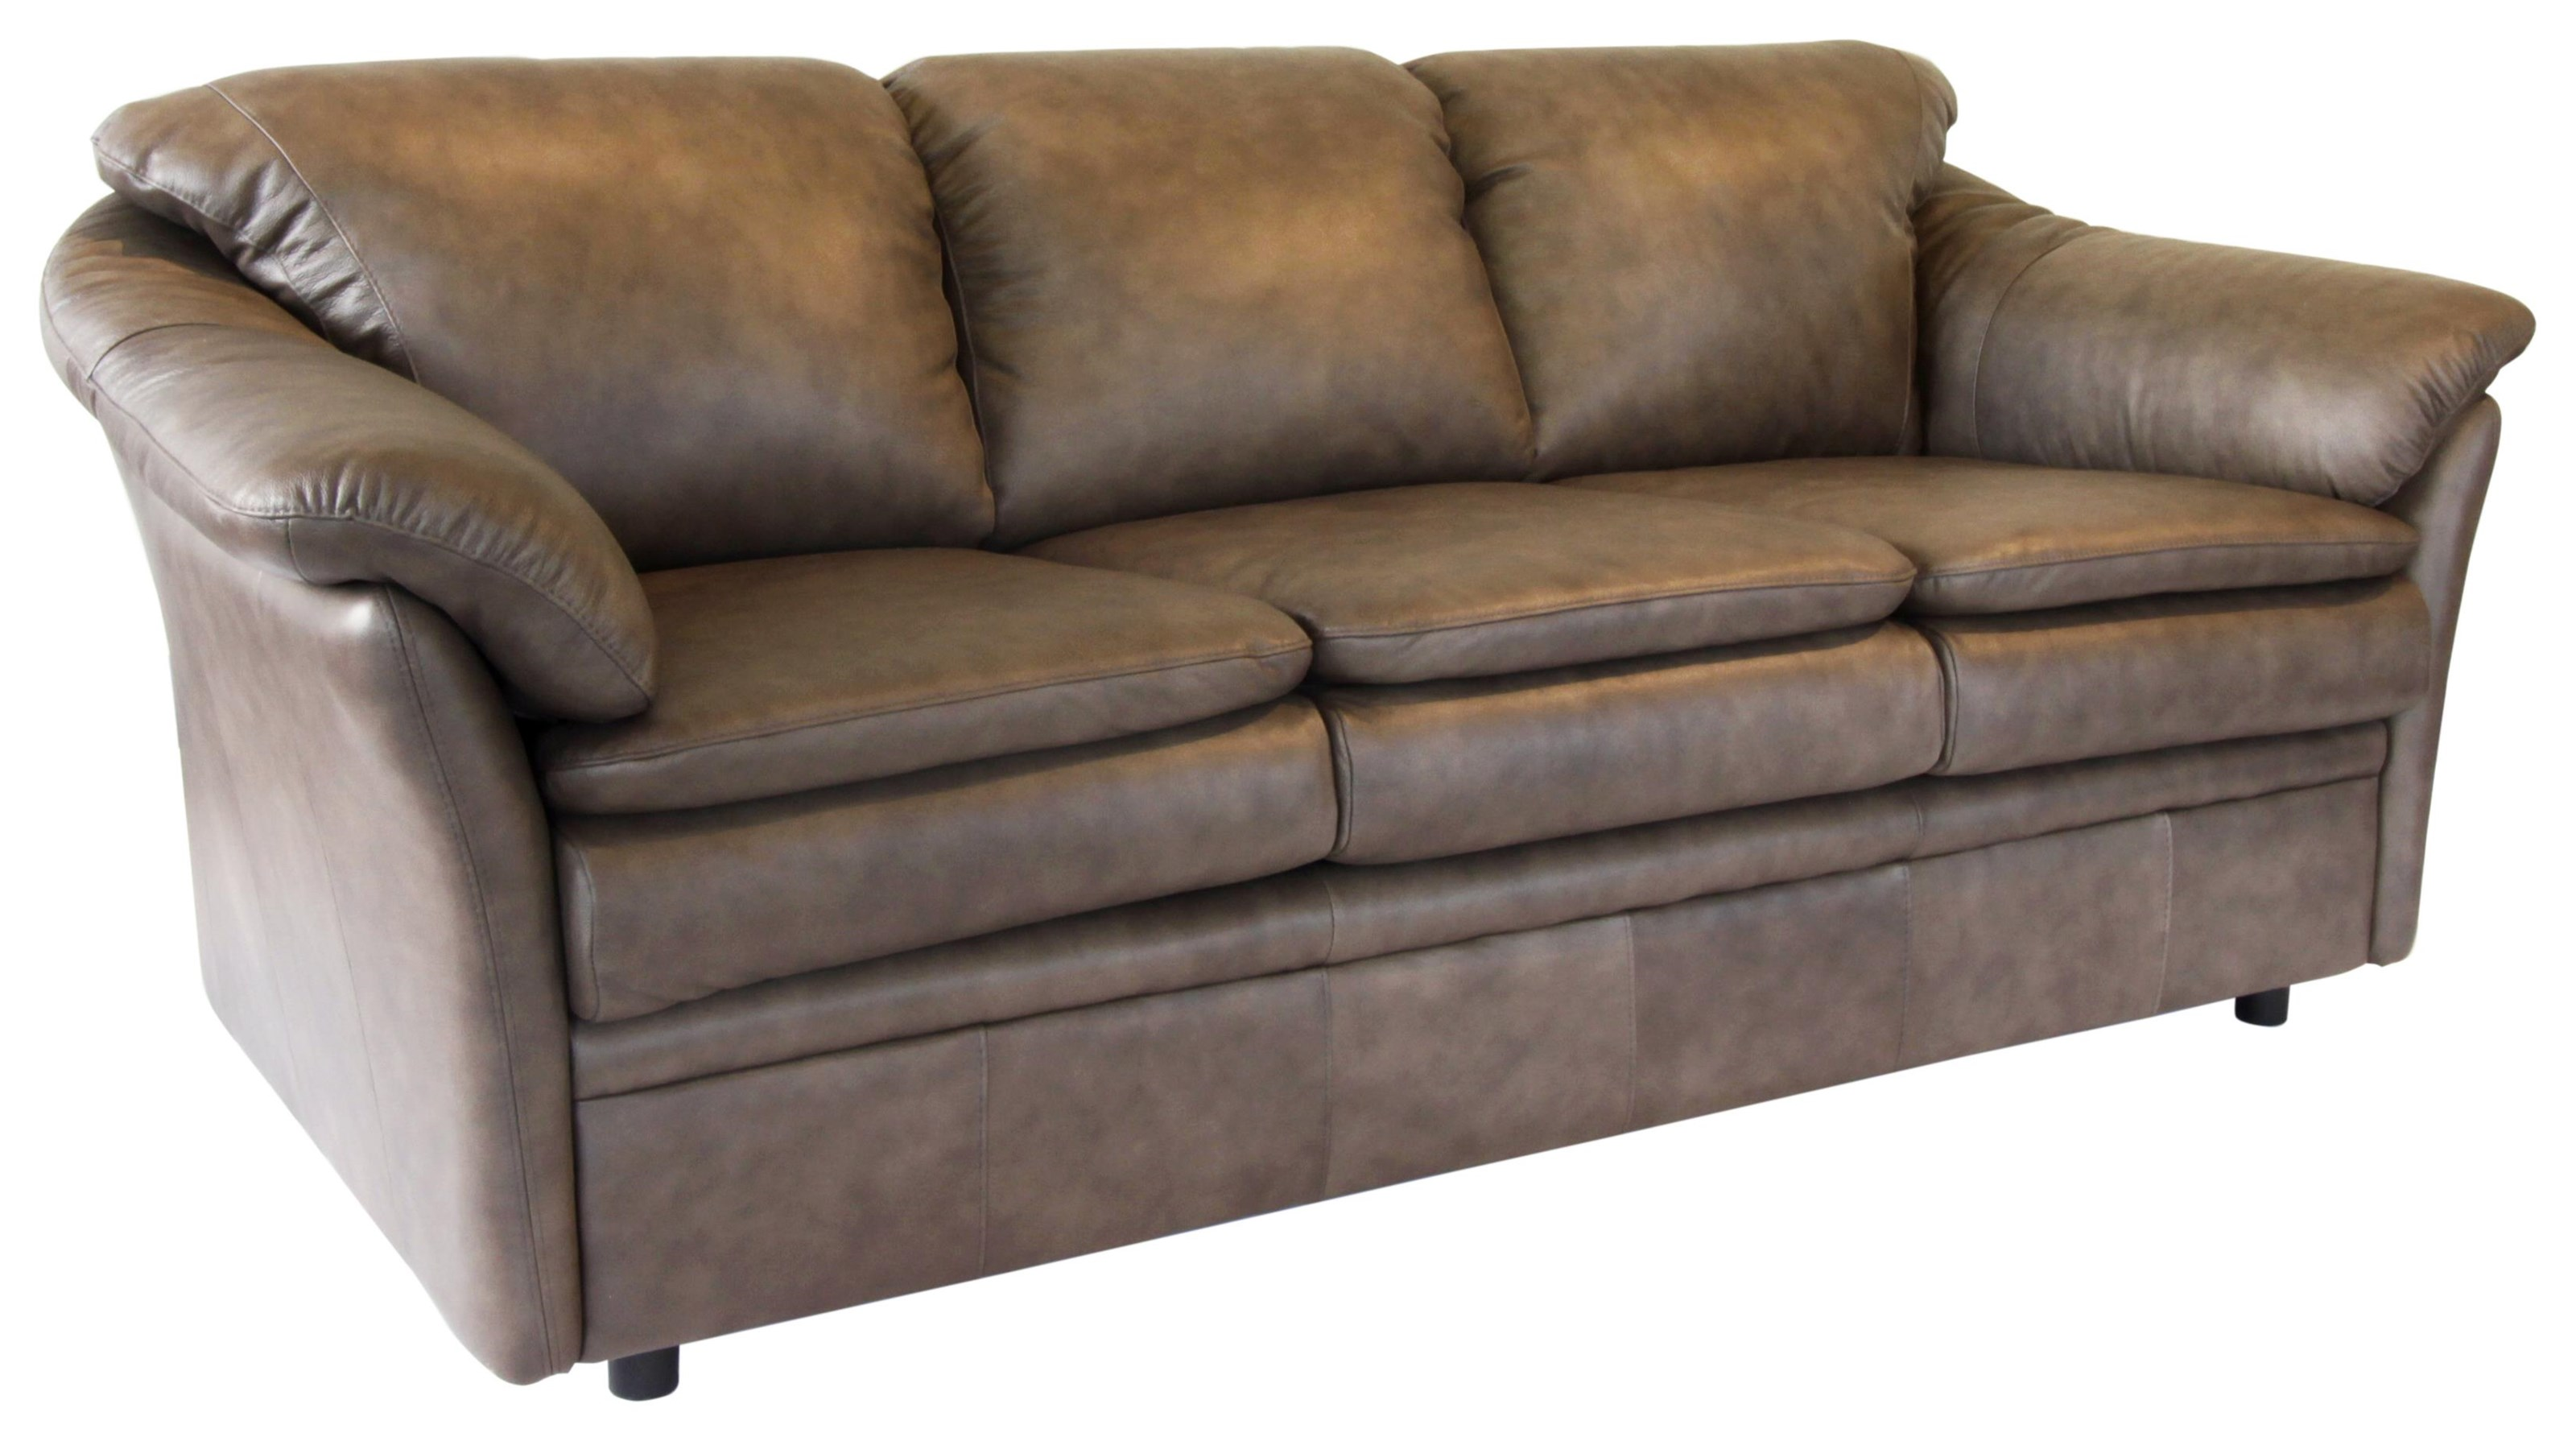 Omnia Leather Uptown Sofa   Item Number: 13001